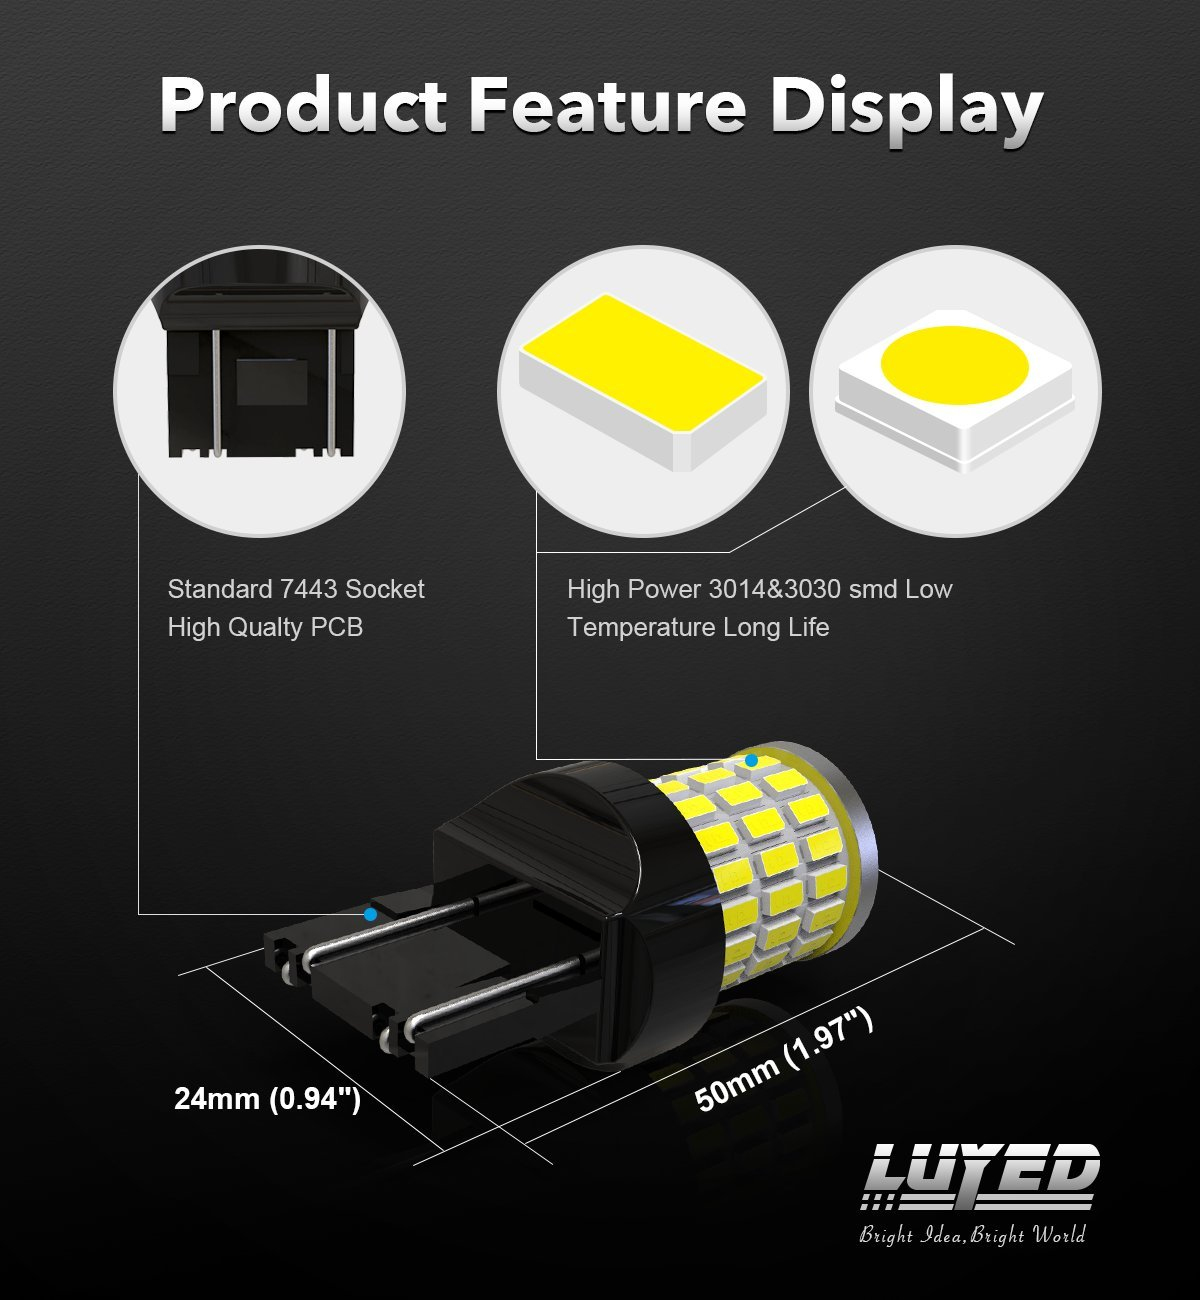 LUYED 2 x Super Bright 9-30v 7440 7443 T20 LED Bulbs Used For Back Up Reverse Lights,Turn Signal Lights,Brake Lights,Tail lights,Xenon White 4333015472